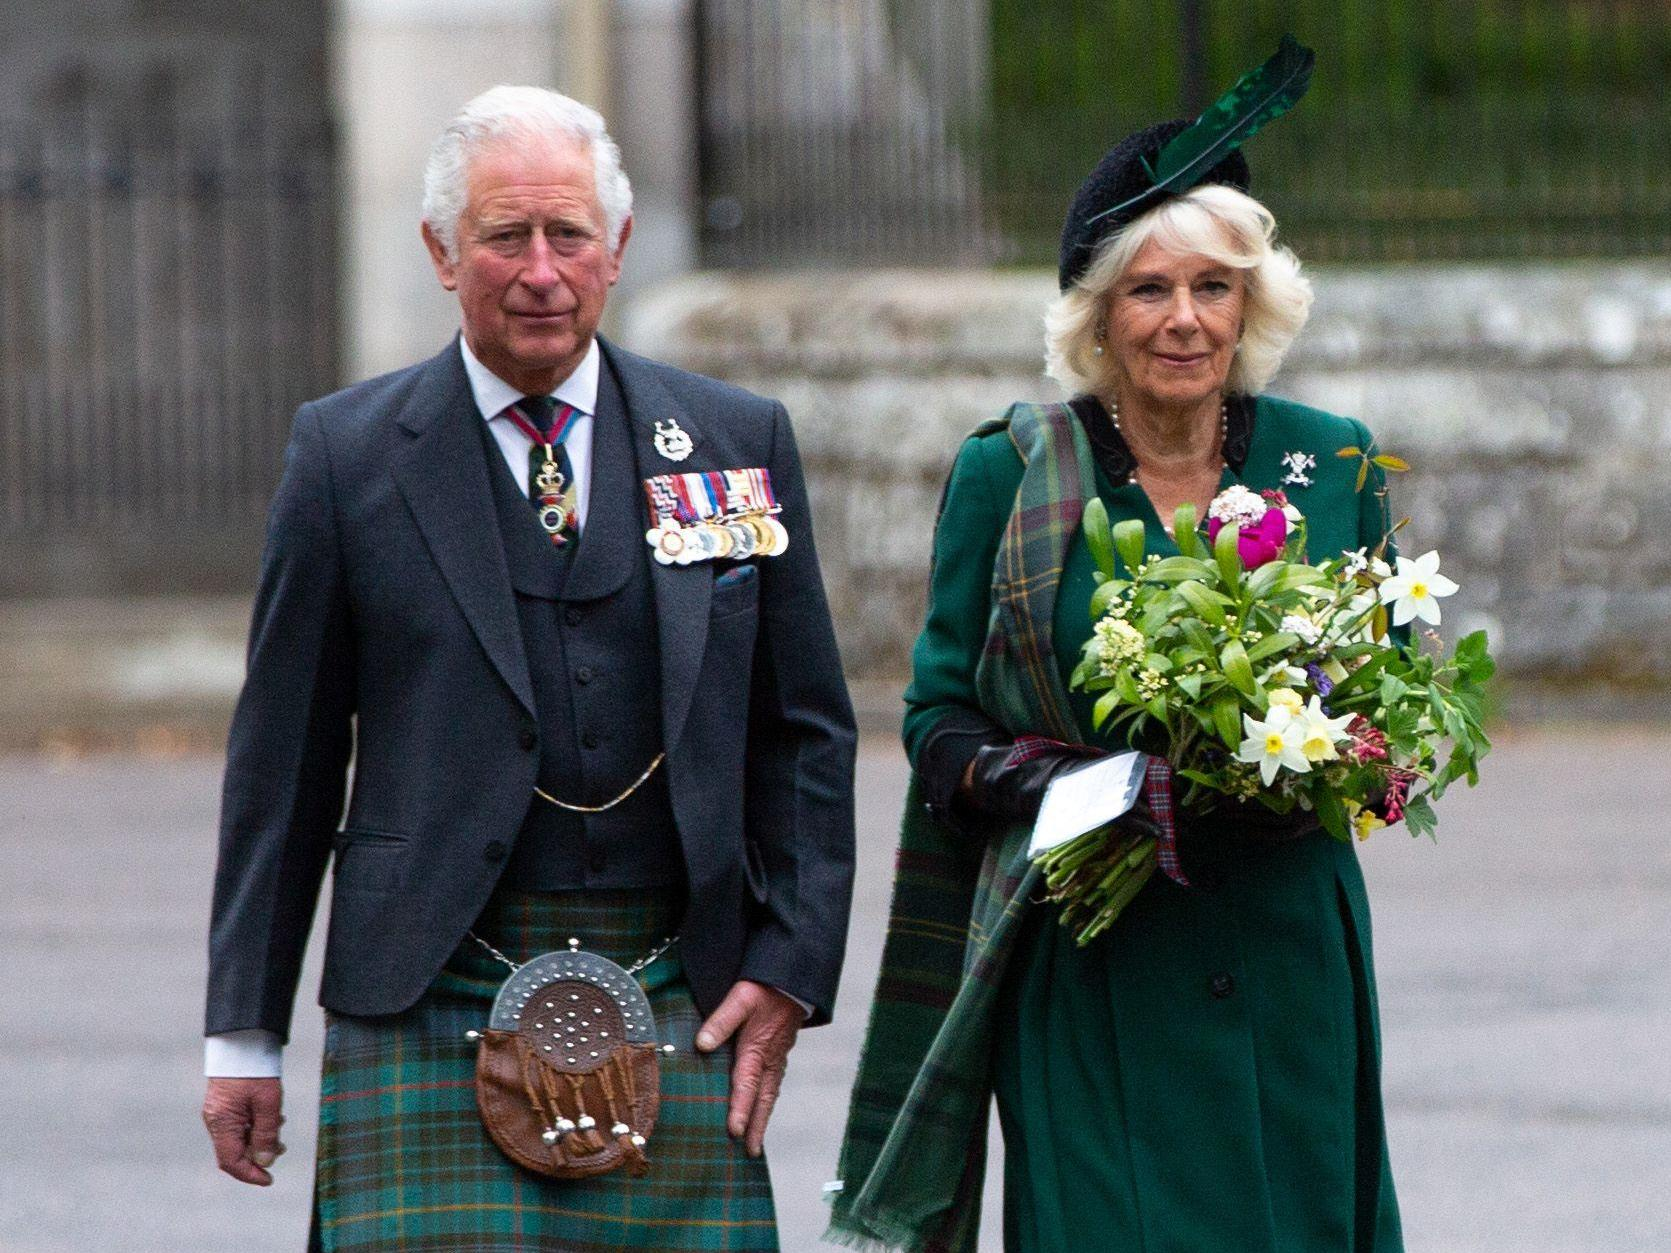 Prince Charles says it is 'hard to bear' the cancellation of Scotland's highland games over coronavirus